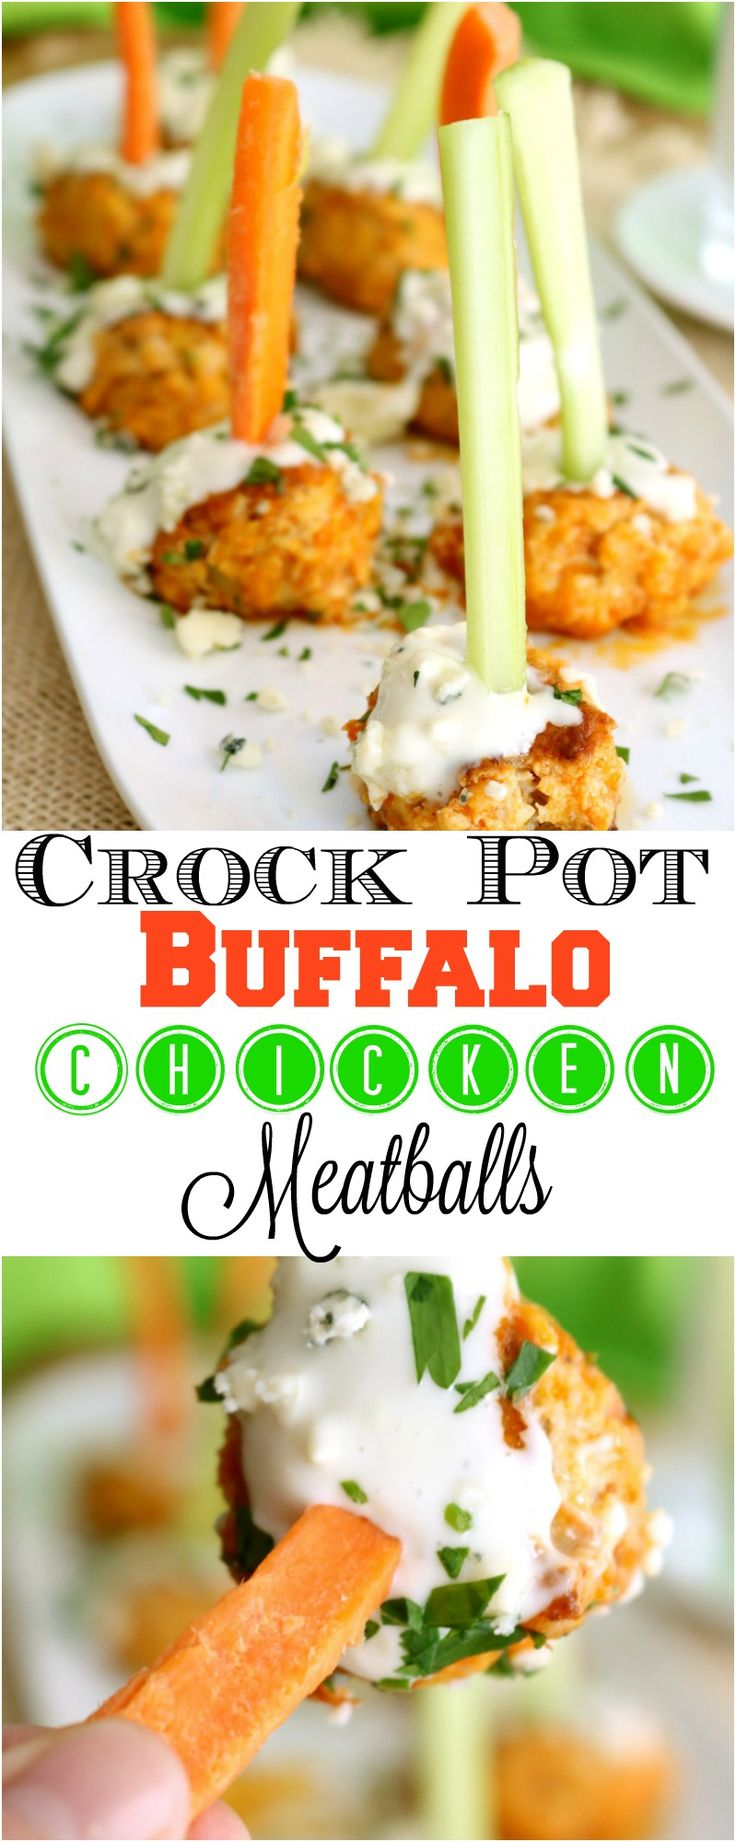 Buffalo Chicken wings are a favorite American appetizer or meal. So when I decided to turn them into a fun party snack, I knew they would be an instant hit. Hot wings are a very popular but serving them for a crowd just isn't economical. Now I can offer my guests the same great flavor of Buffalo wings in an incredibly easy crock pot version. Crock Pot Buffalo Chicken Meatballs are on the menu today. So let's dig in!